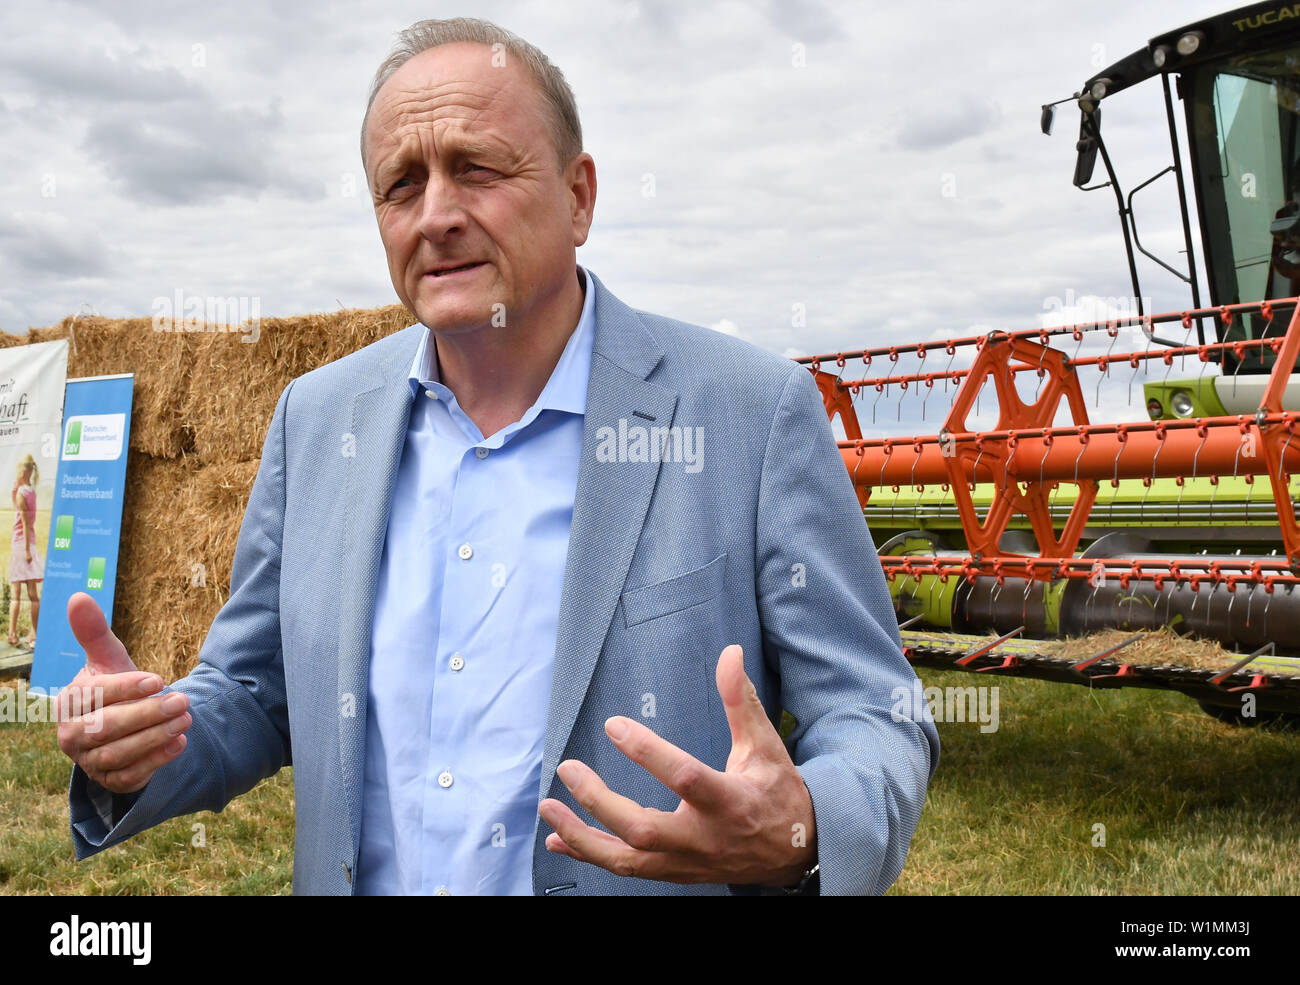 03 July 2019, Brandenburg, Dallgow-Döberitz: Joachim Rukwied (r), President of the German Farmers' Association, speaks at the press conference on the start of the harvest. Due to late frosts and drought, large harvest losses are expected. Photo: Bernd Settnik/dpa-Zentralbild/dpa - Stock Image